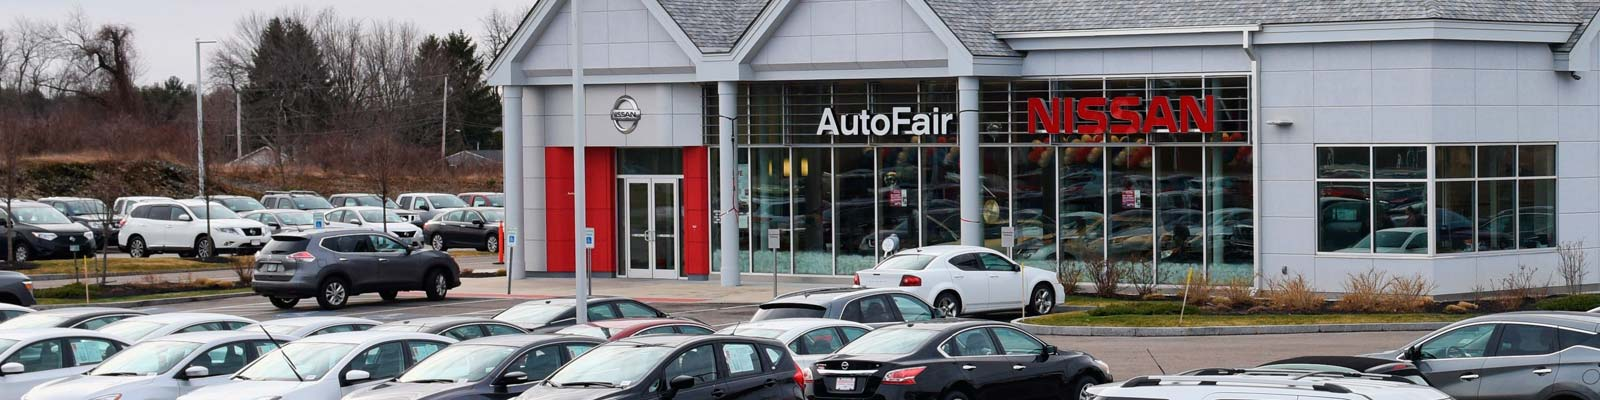 autofair-featured